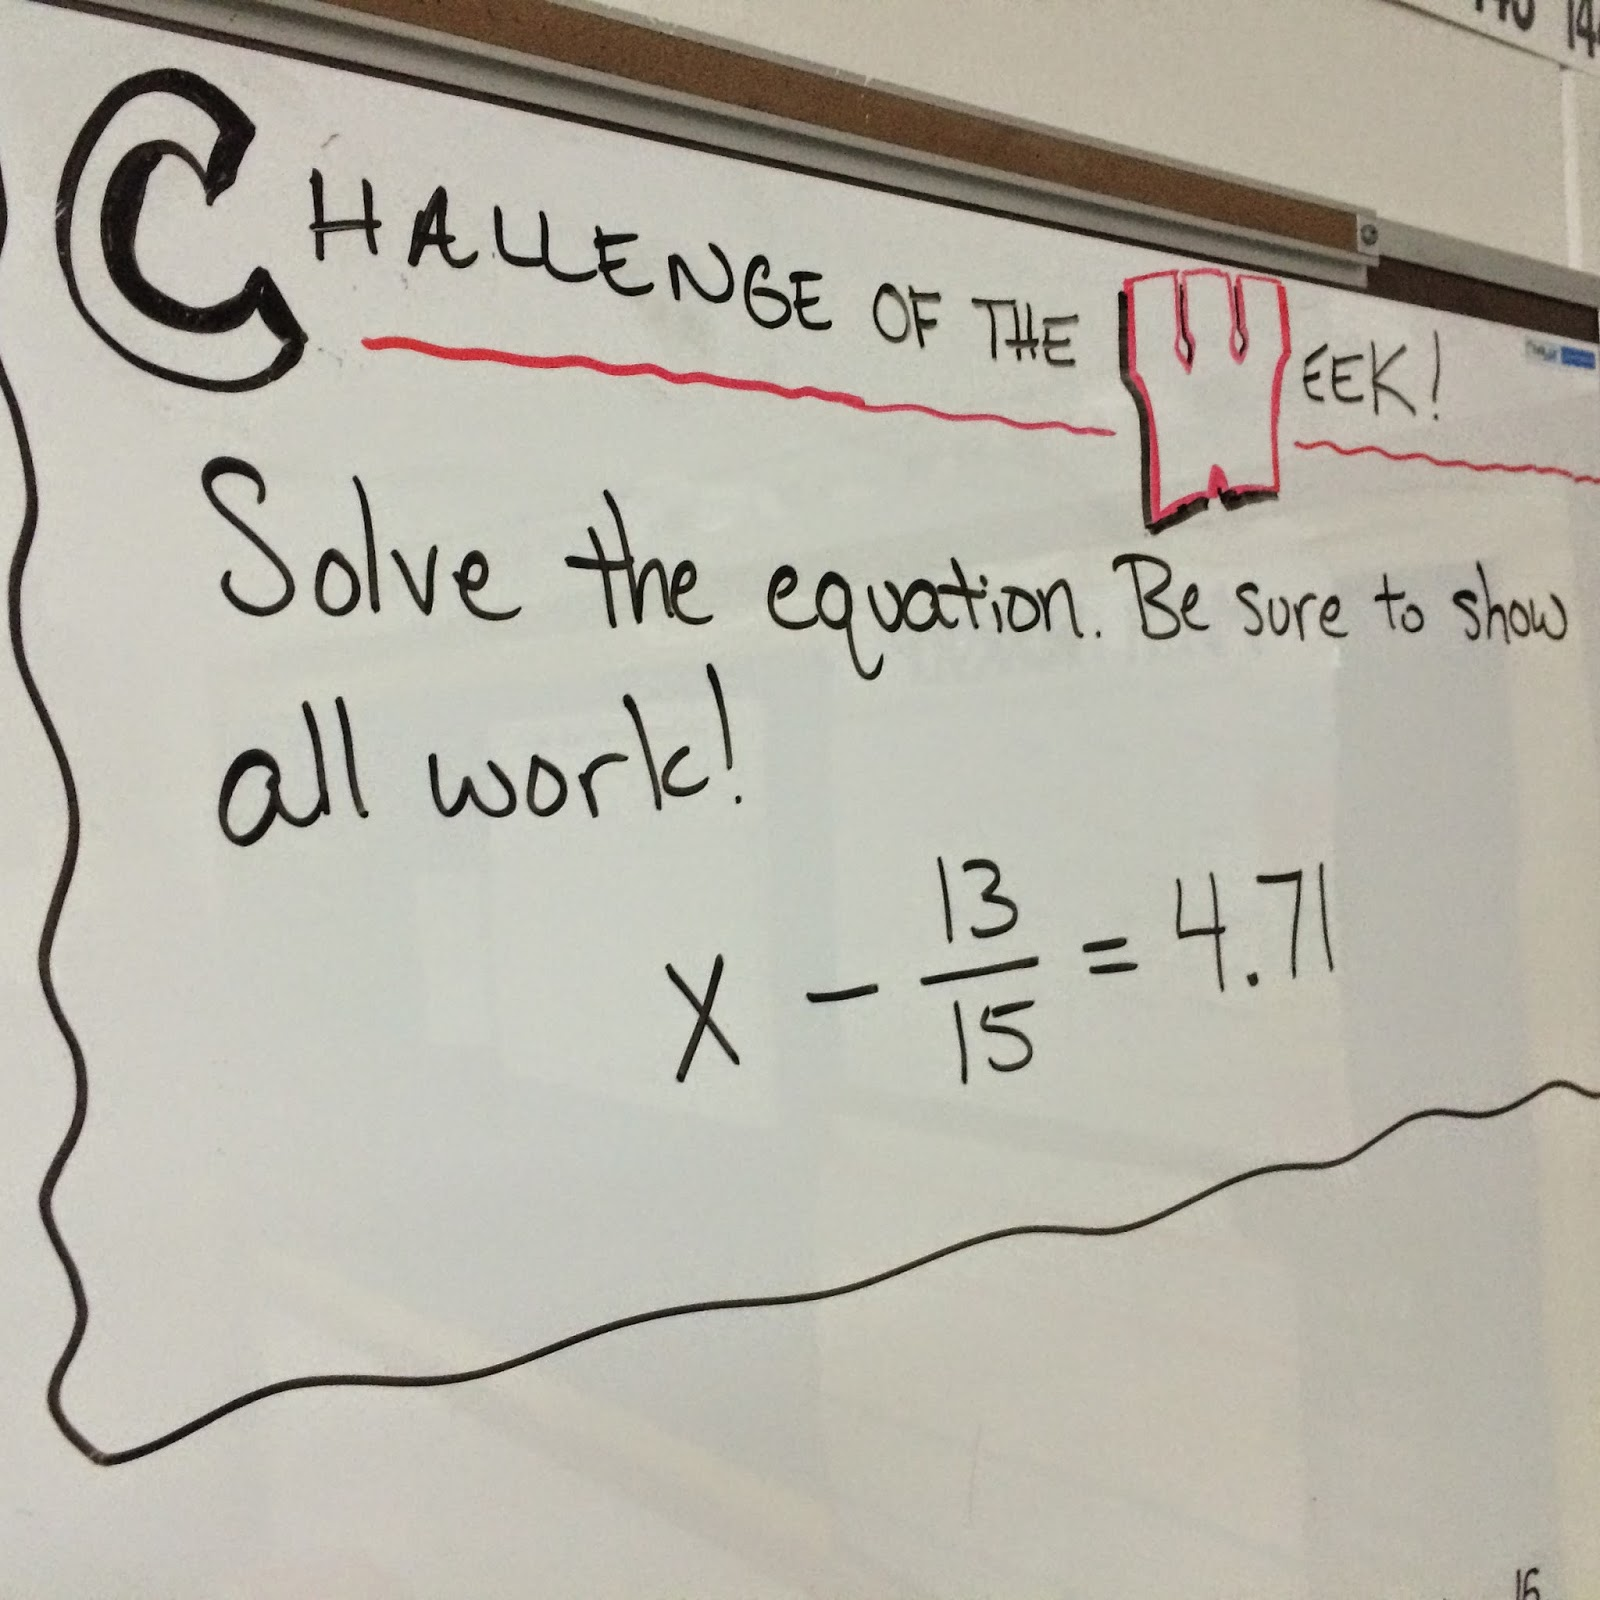 small resolution of Middle School Math Man: Challenge of the Week